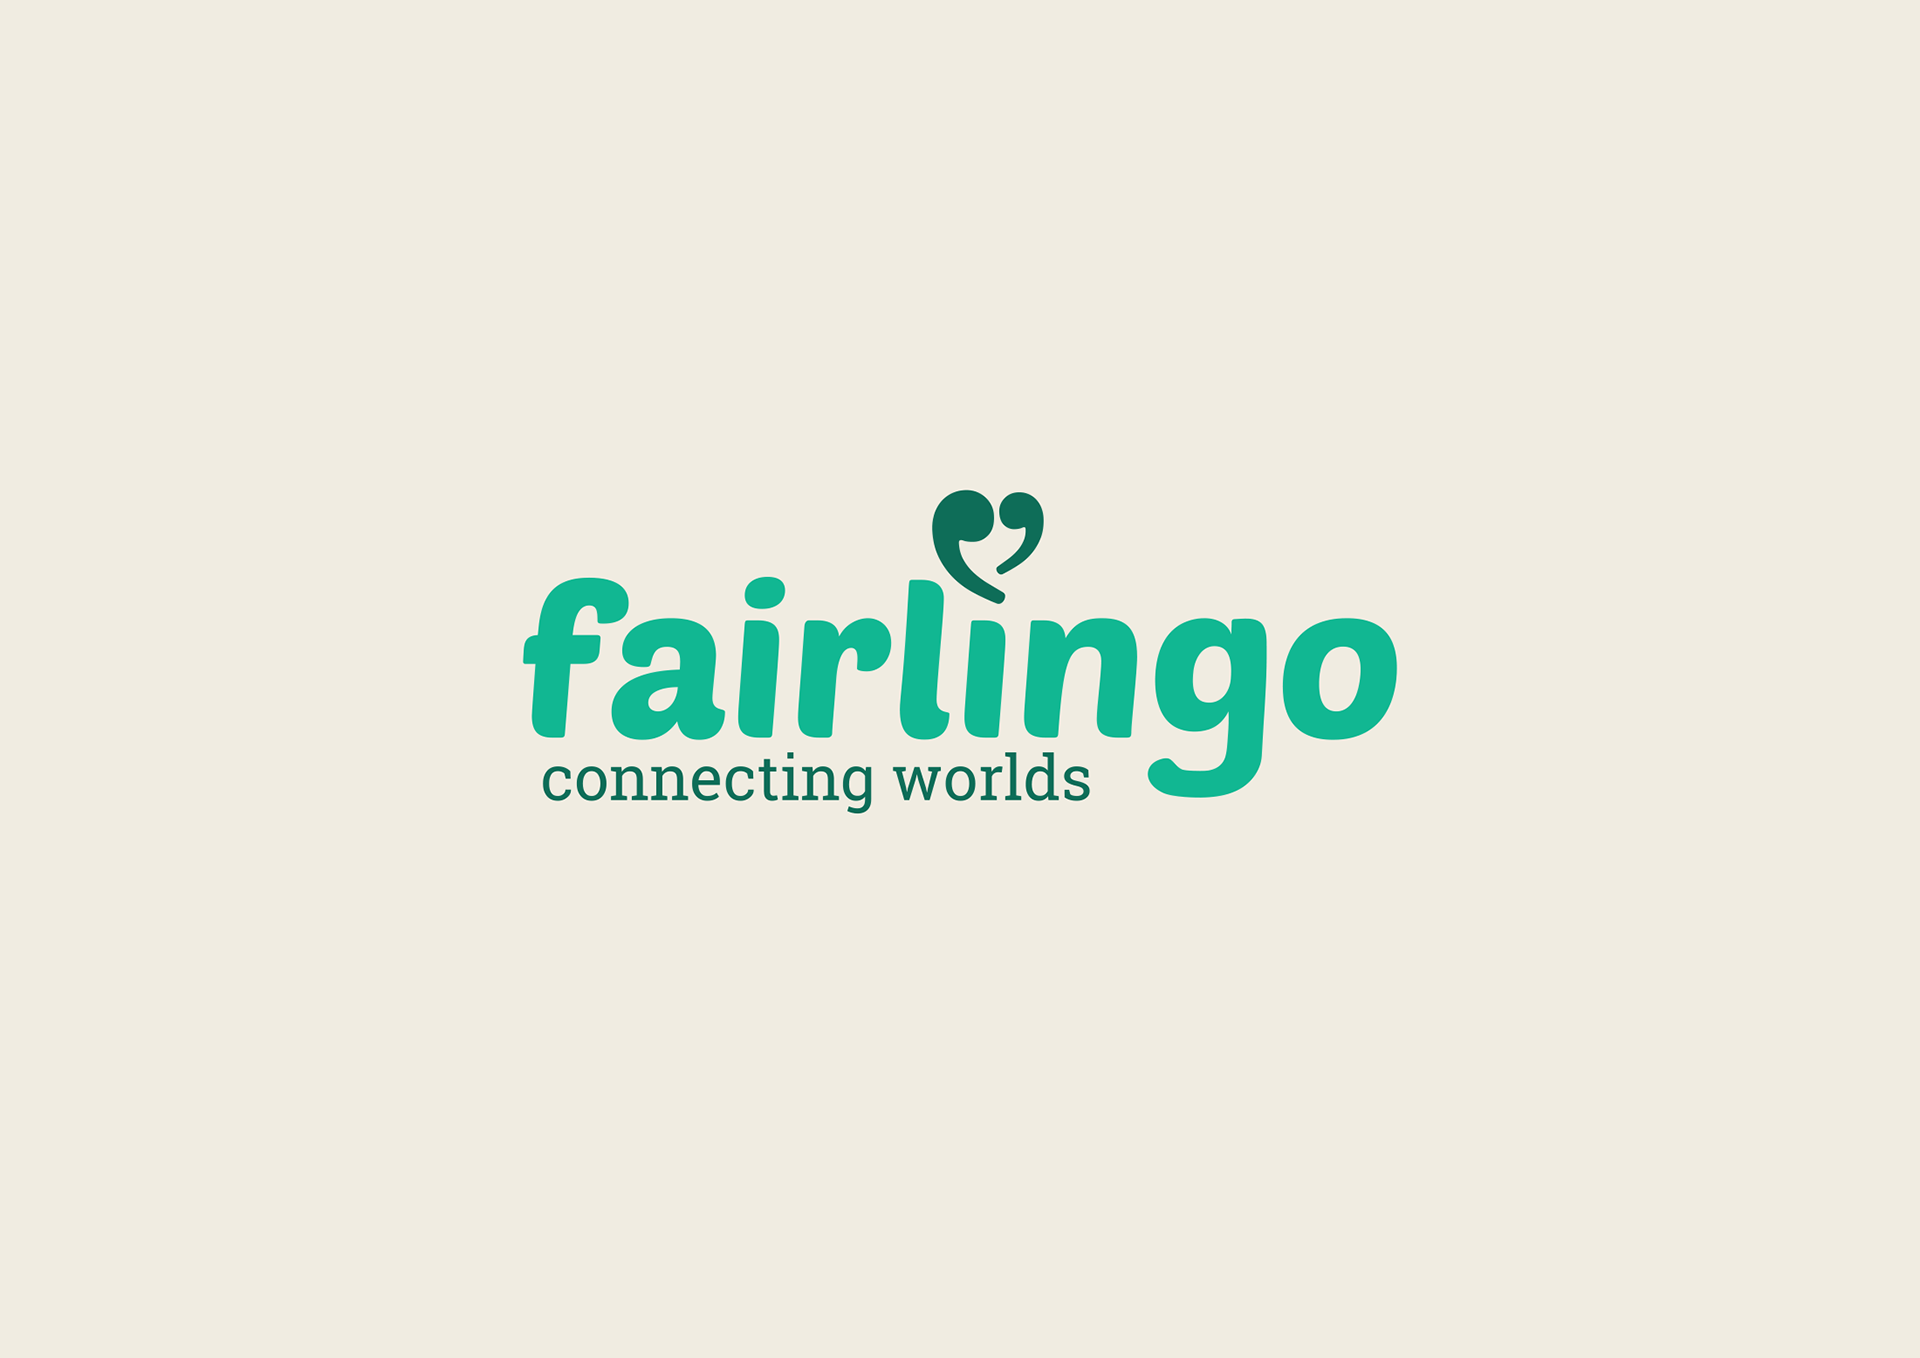 fairlingo-logo-01